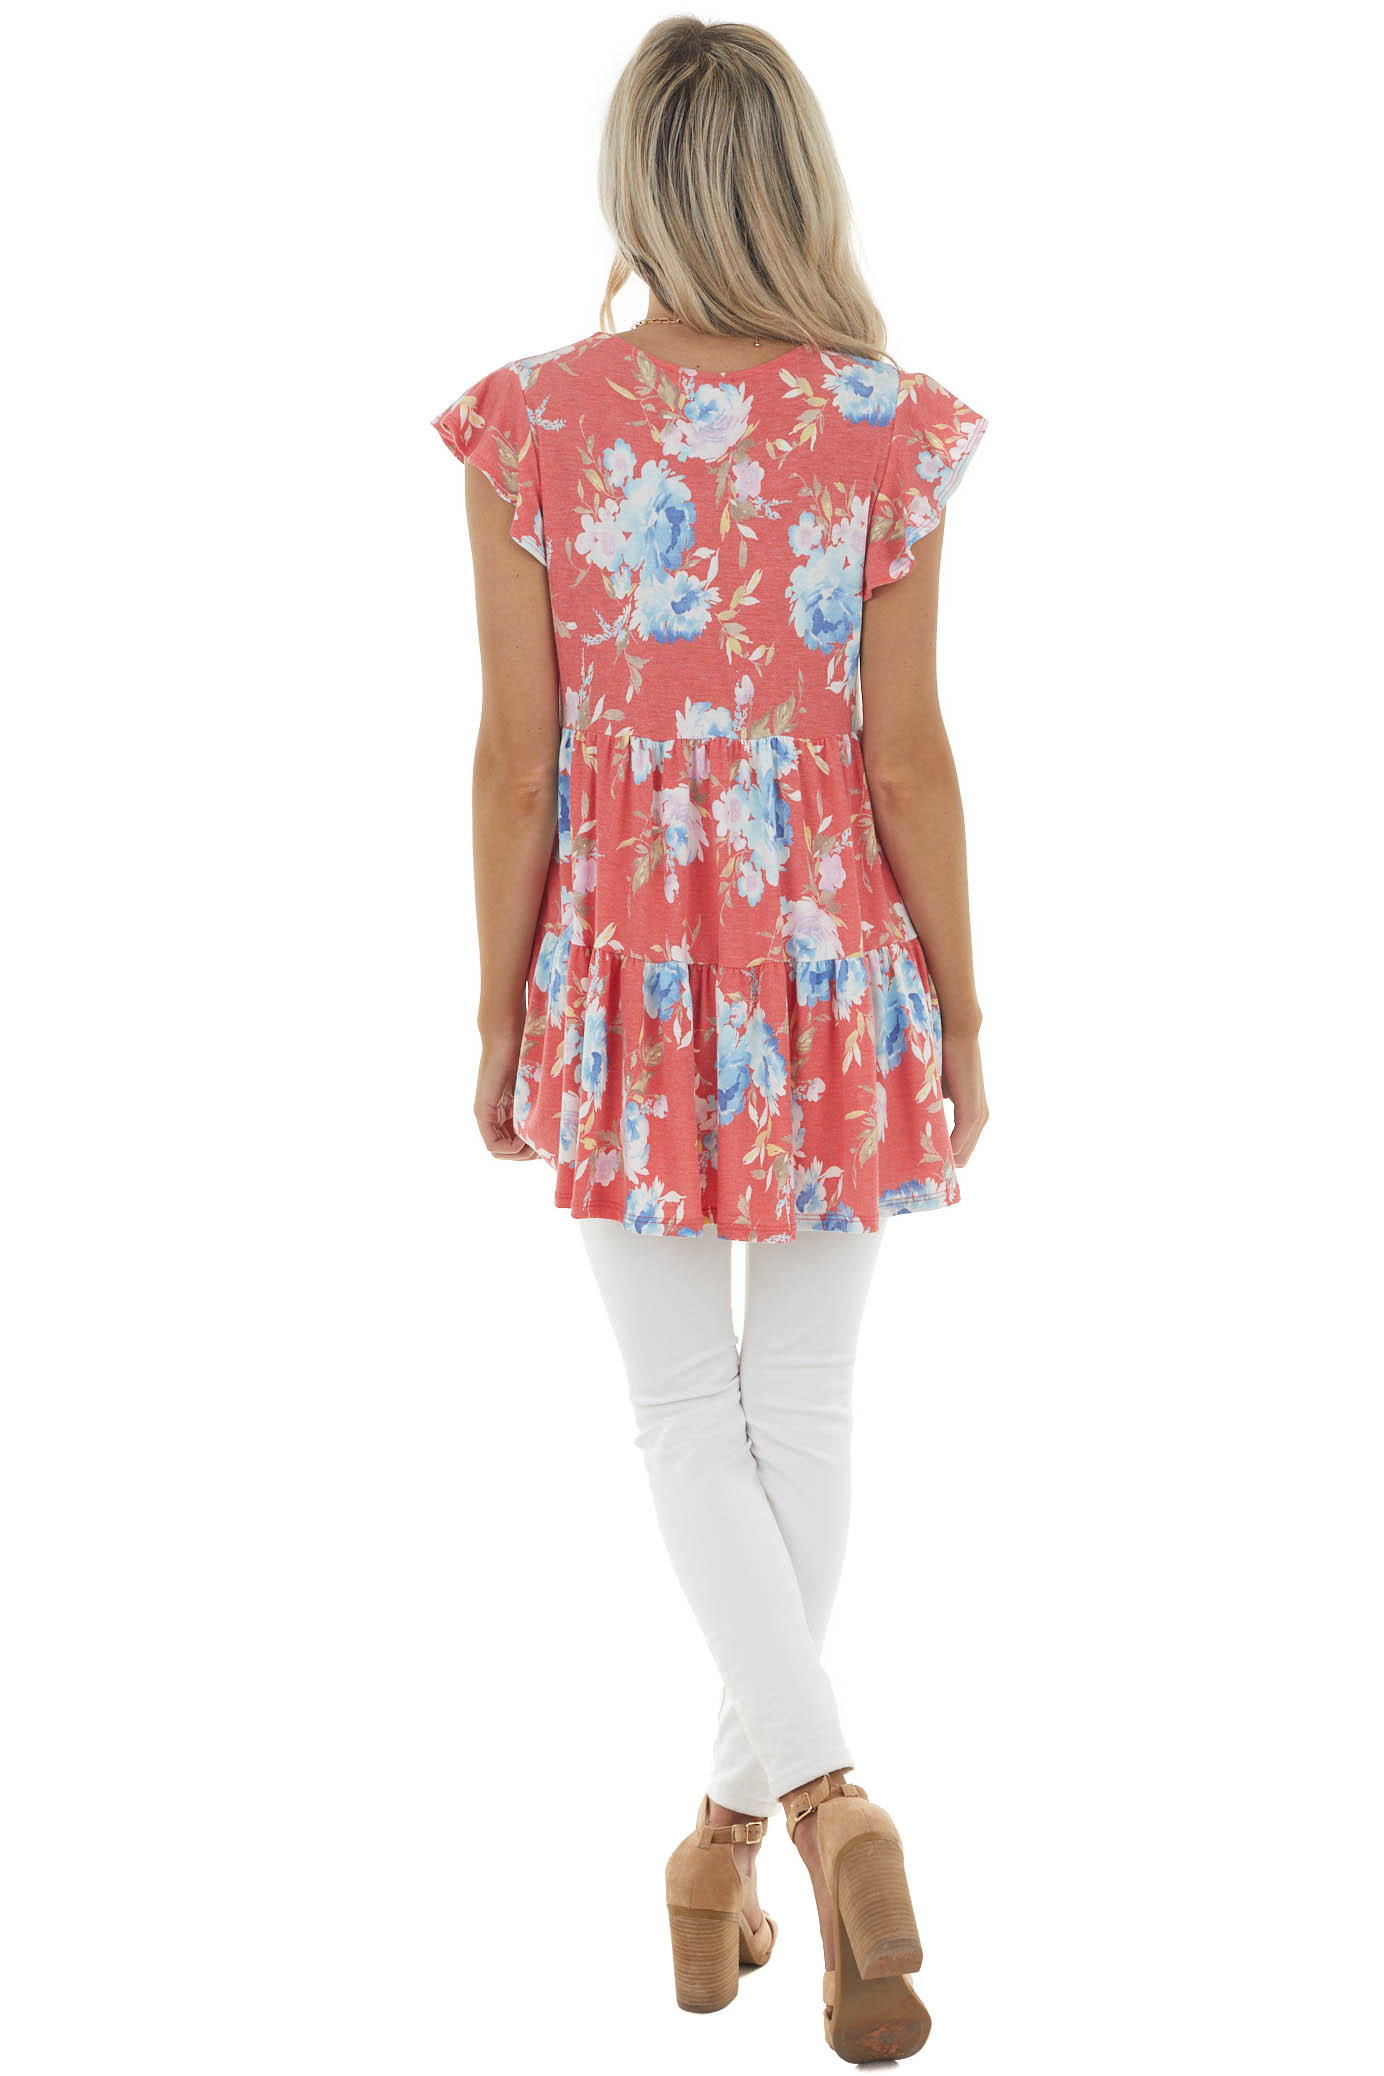 Coral Floral Print Babydoll Tunic Top with Flutter Sleeves